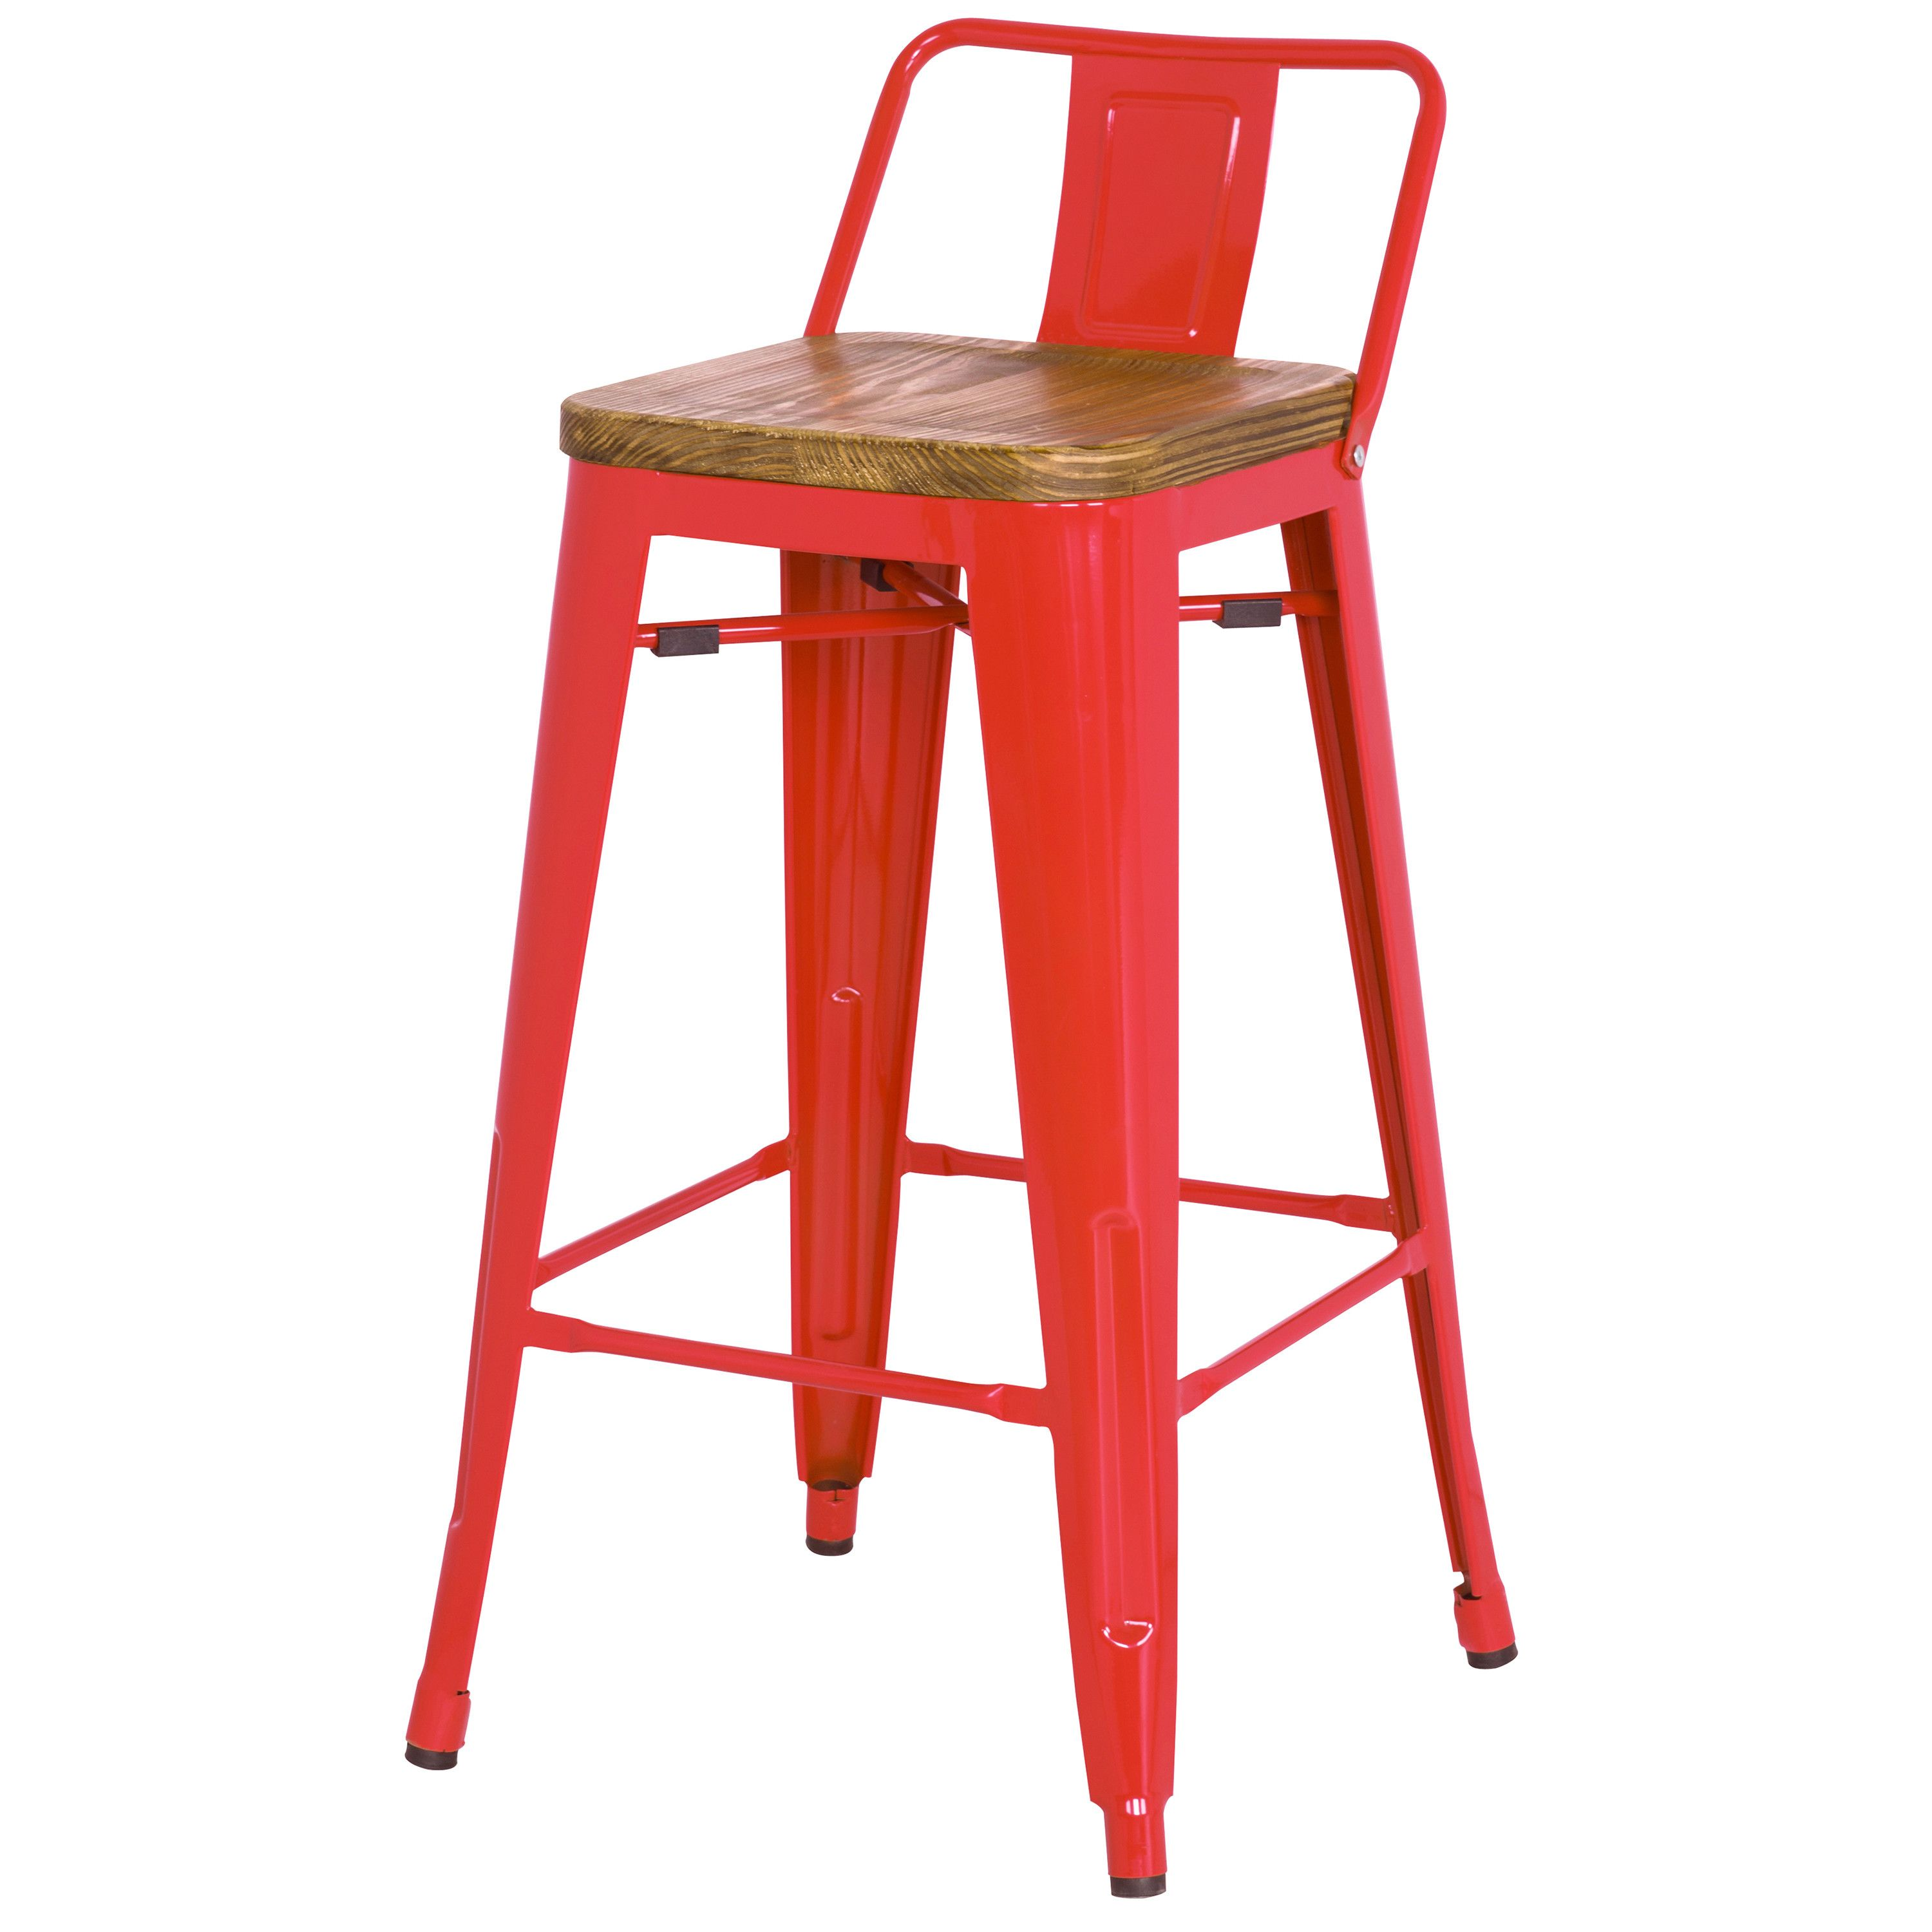 Pleasing Shop Wayfair For All Bar Stools To Match Every Style And Ibusinesslaw Wood Chair Design Ideas Ibusinesslaworg